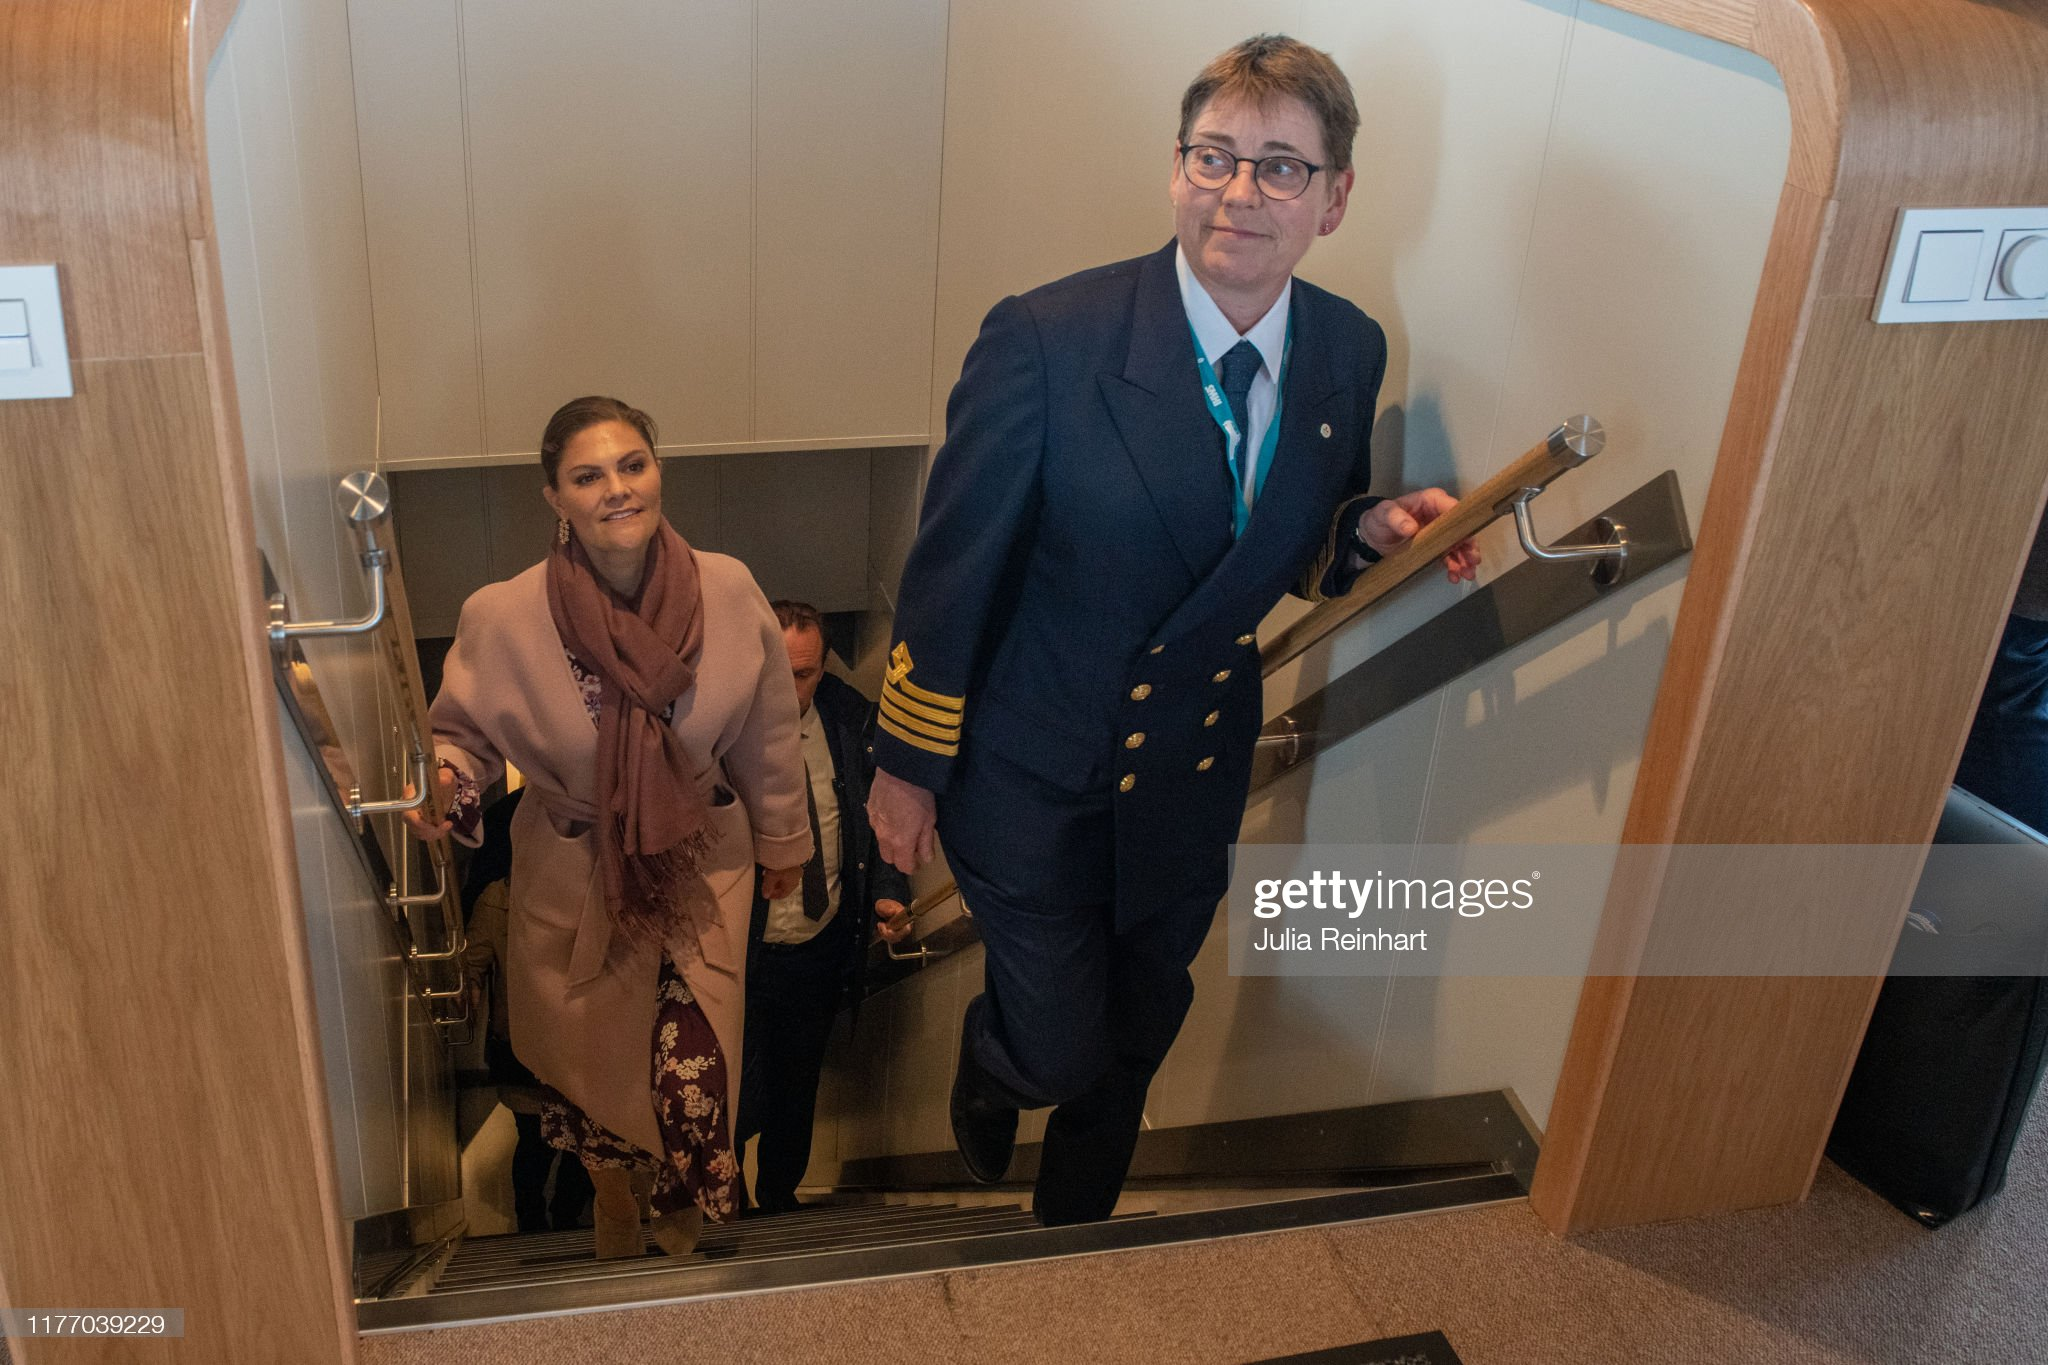 crown-princess-victoria-visits-the-sea-fish-laboratorys-newly-boat-picture-id1177039229